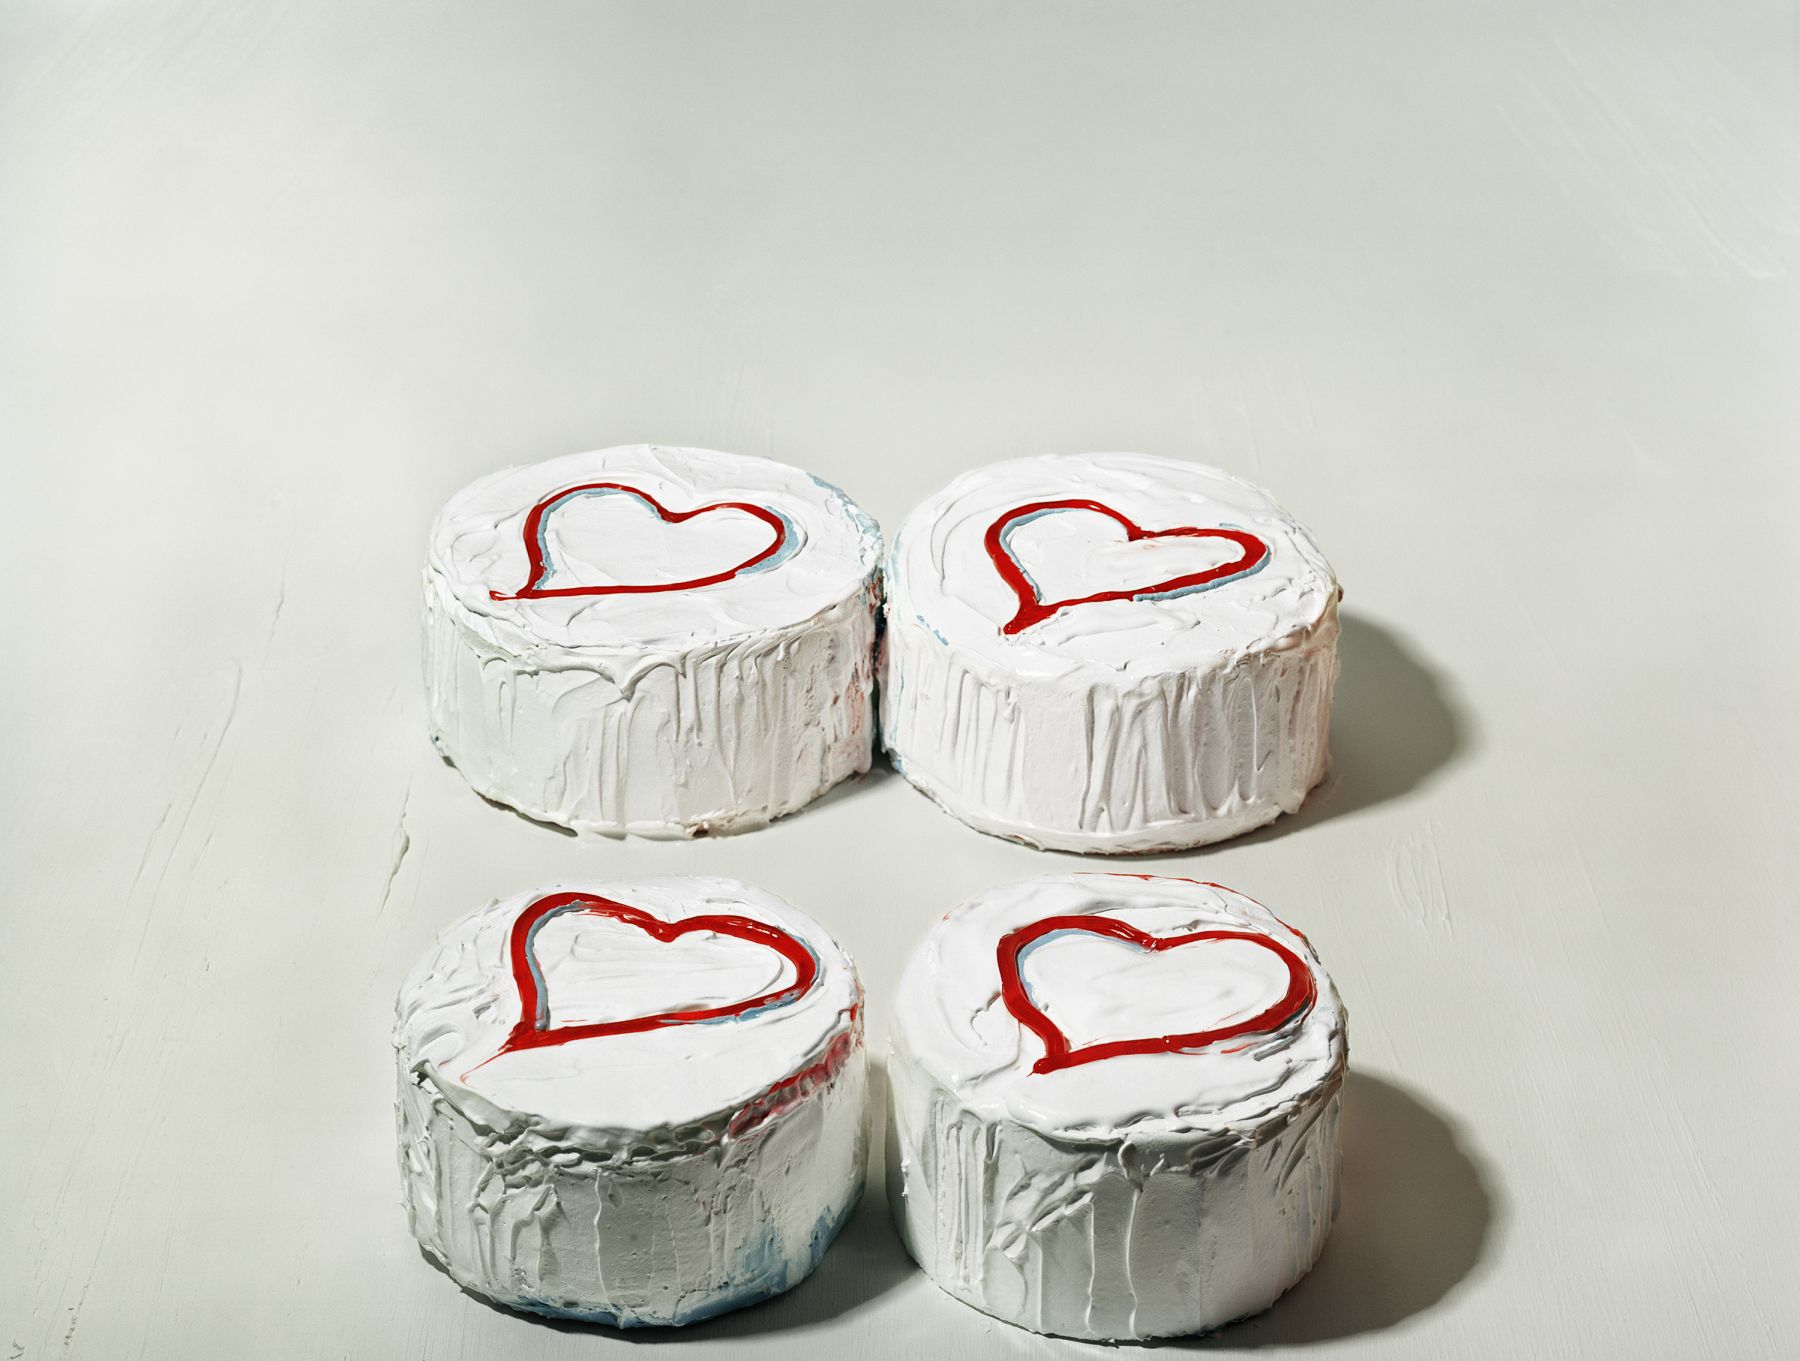 Sharon Core, Four Heart Cakes, 2004